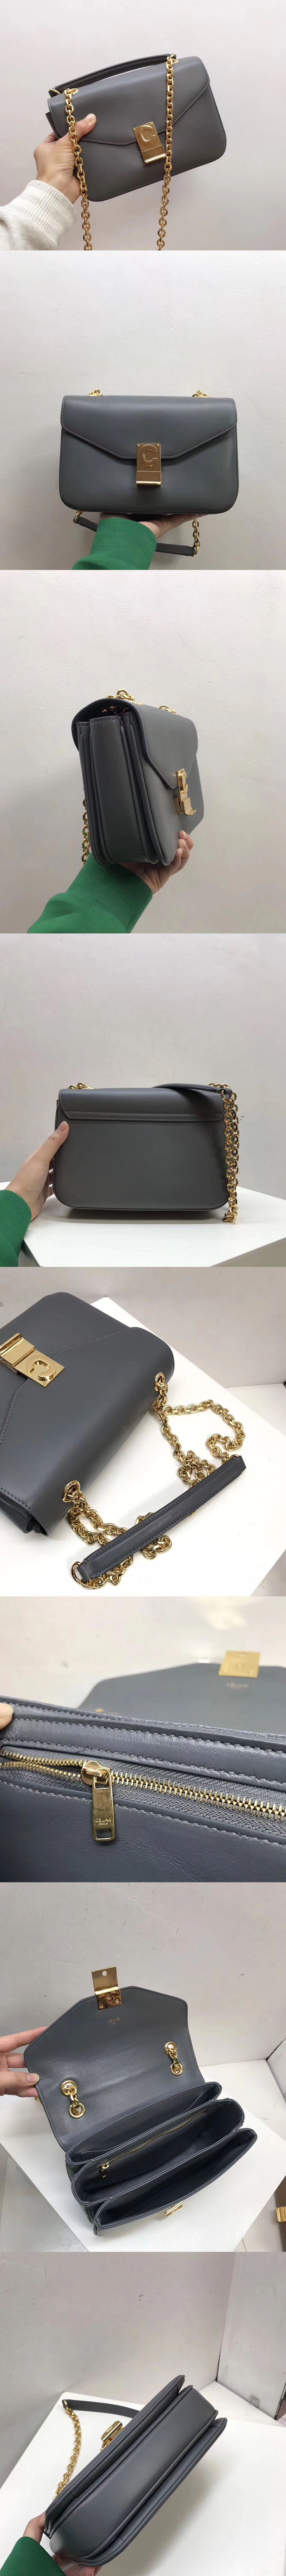 Replica Celine Shiny Calfskin Medium C Bags Grey